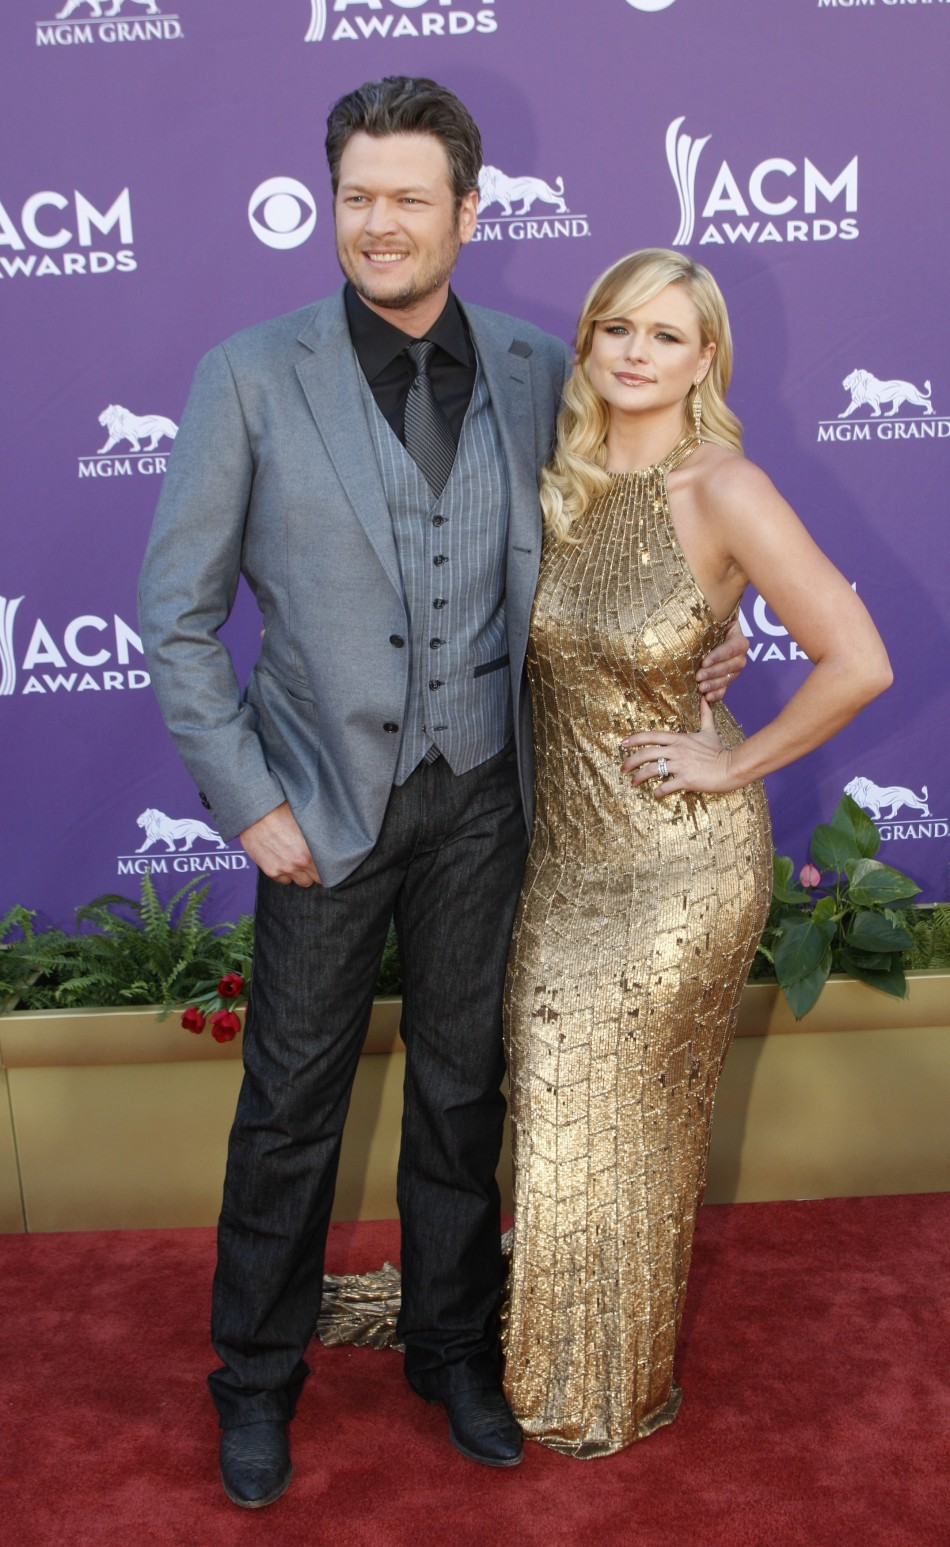 ACM Awards 2012